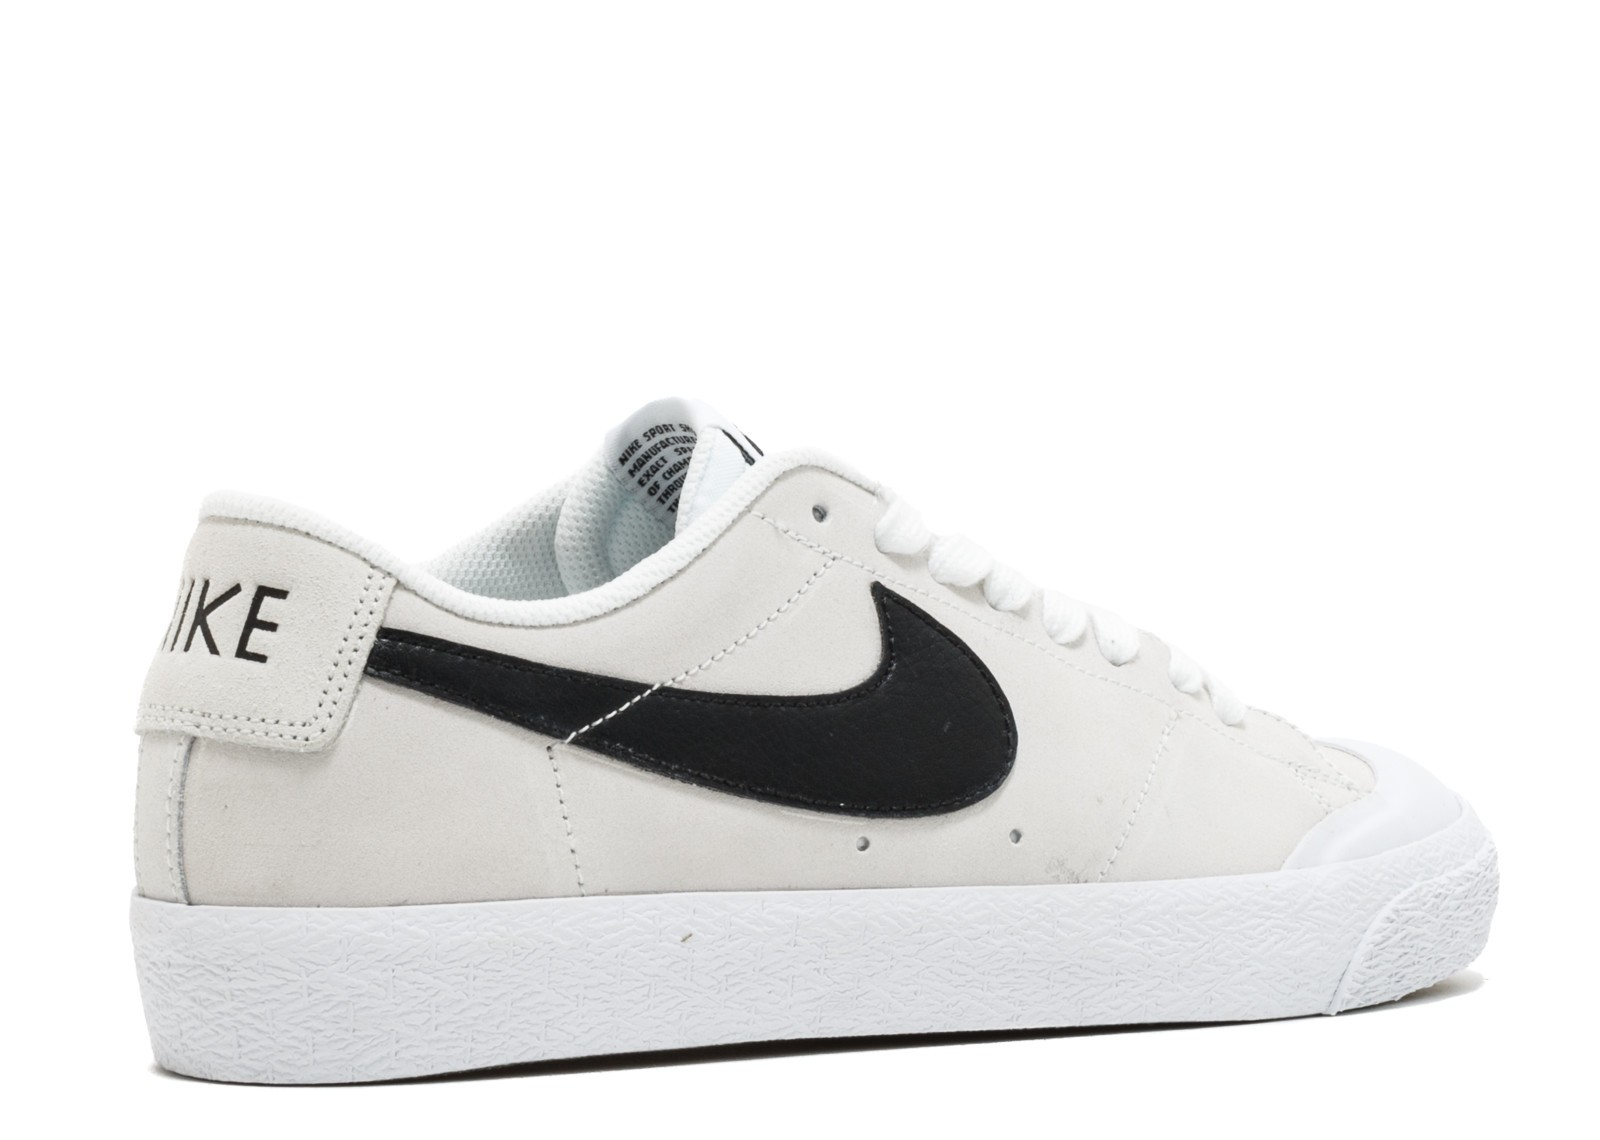 de madera siete y media clase  Nike Sb Blazer Zoom Low Xt White Summit Black 864348-101 - FebRun